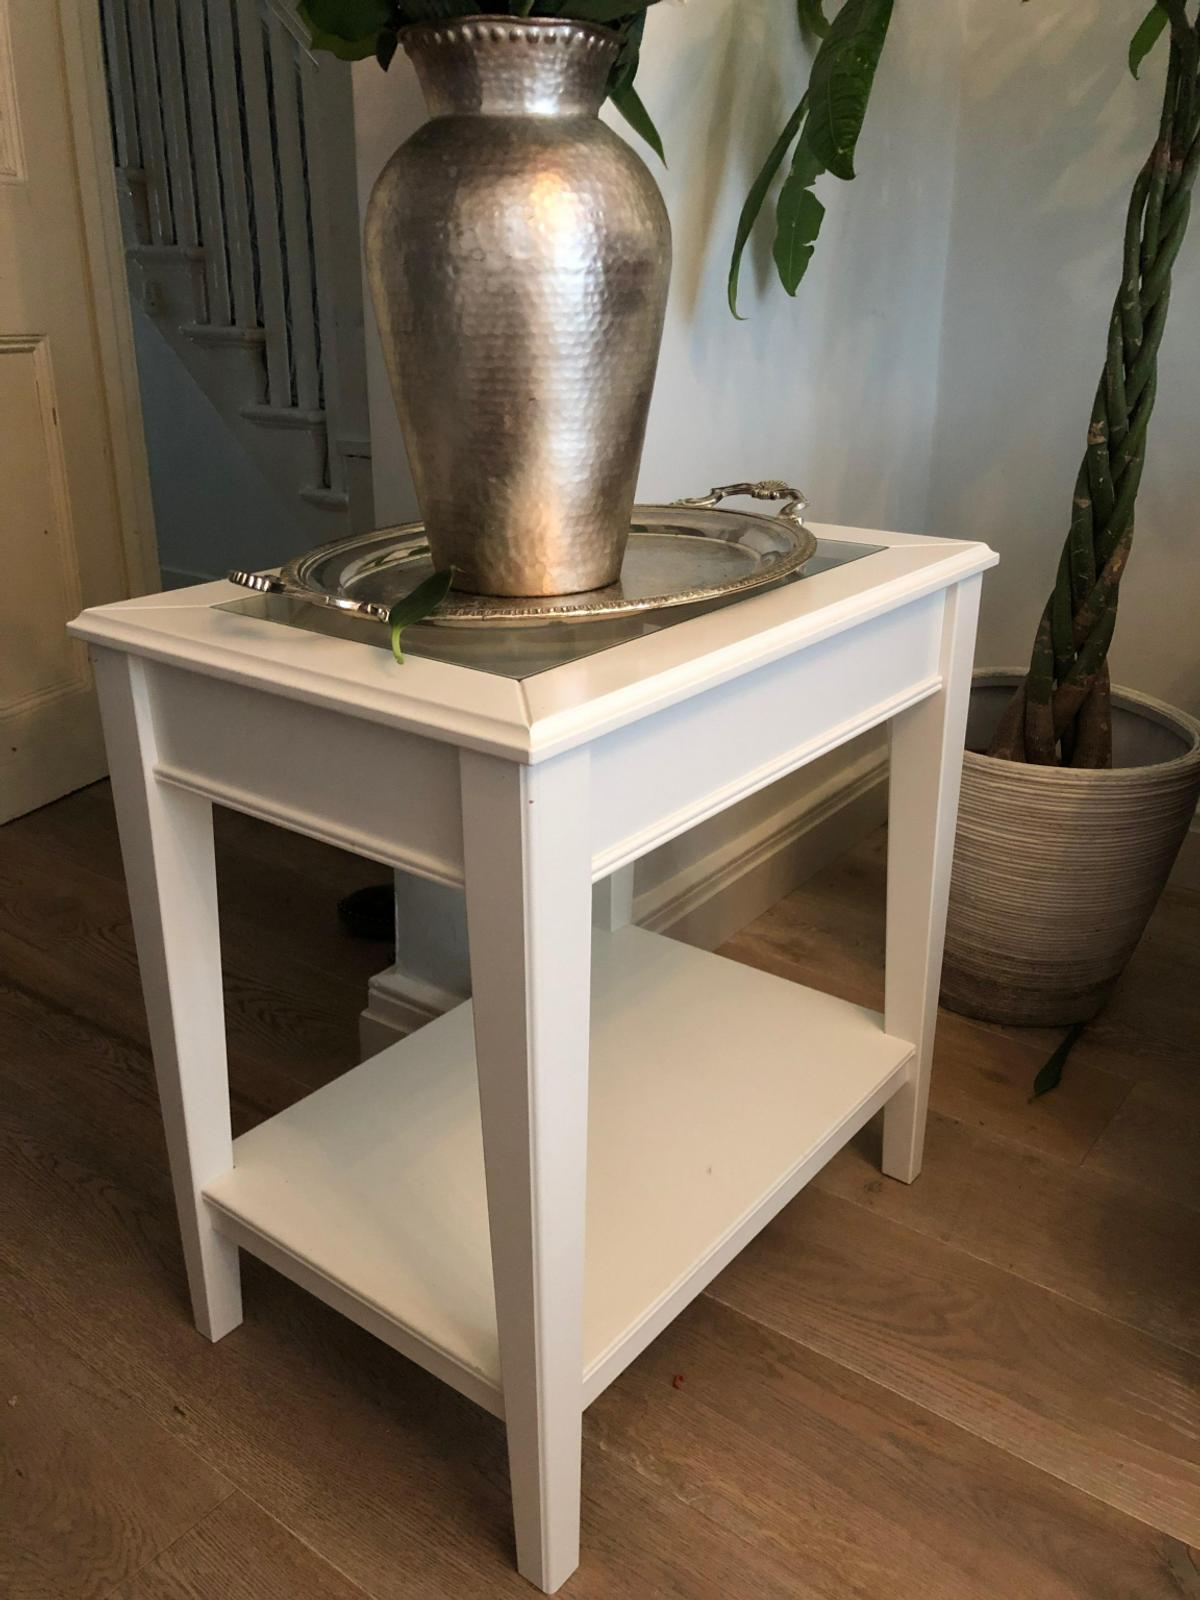 Liatorp Side Table.Liatorp Side Table Ikea